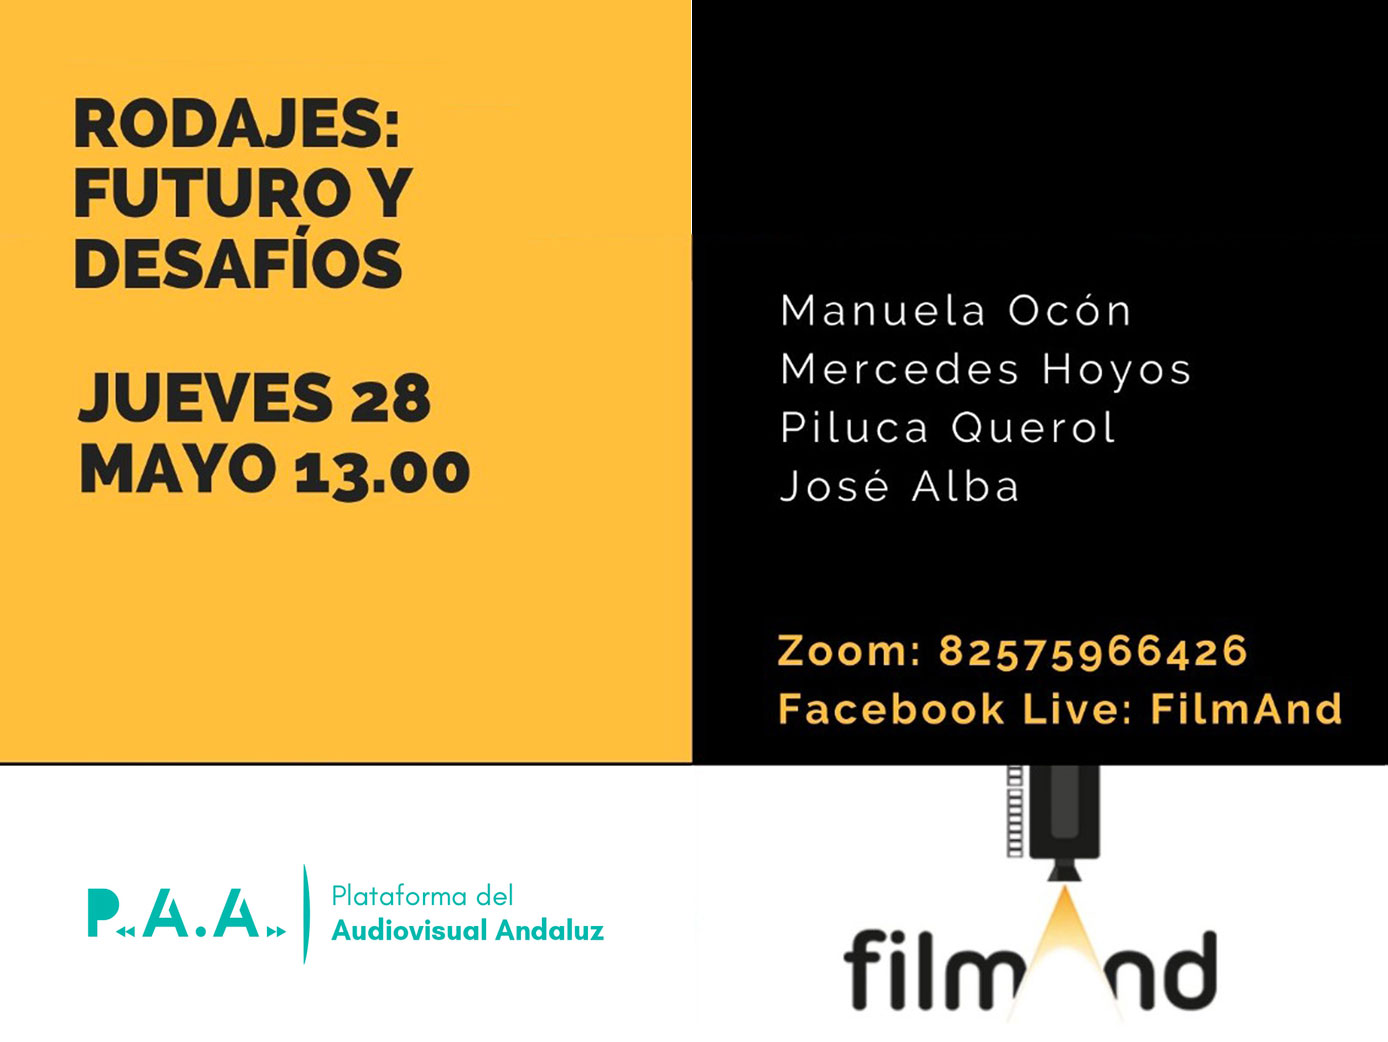 FilmAnd not - Andalucía Film Commission